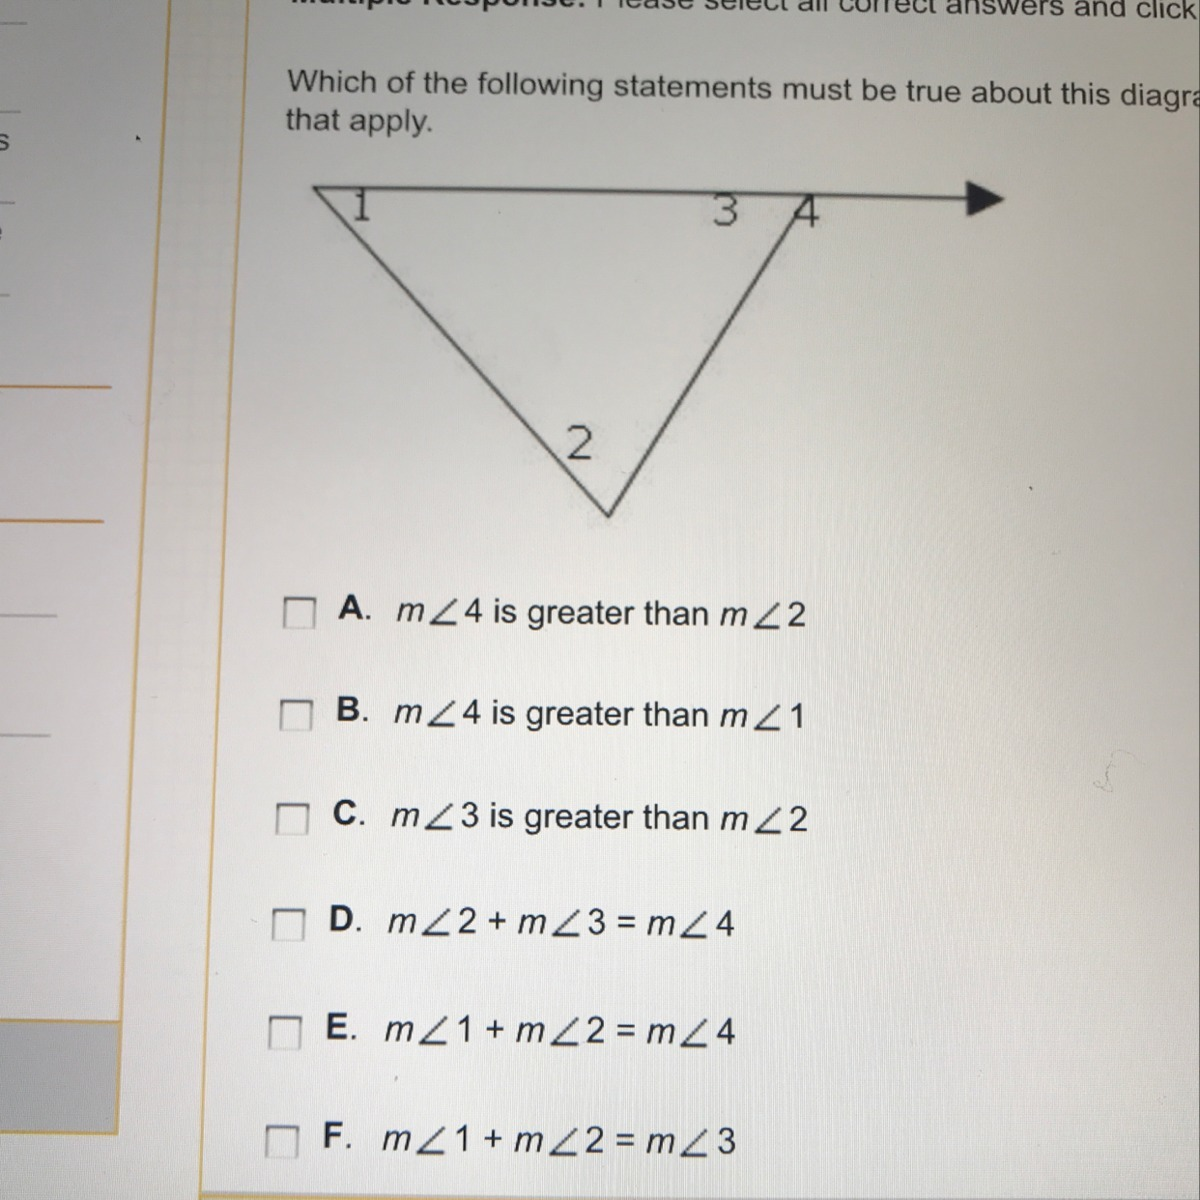 Wiring Diagram Database: Which Statements Are True Based ...